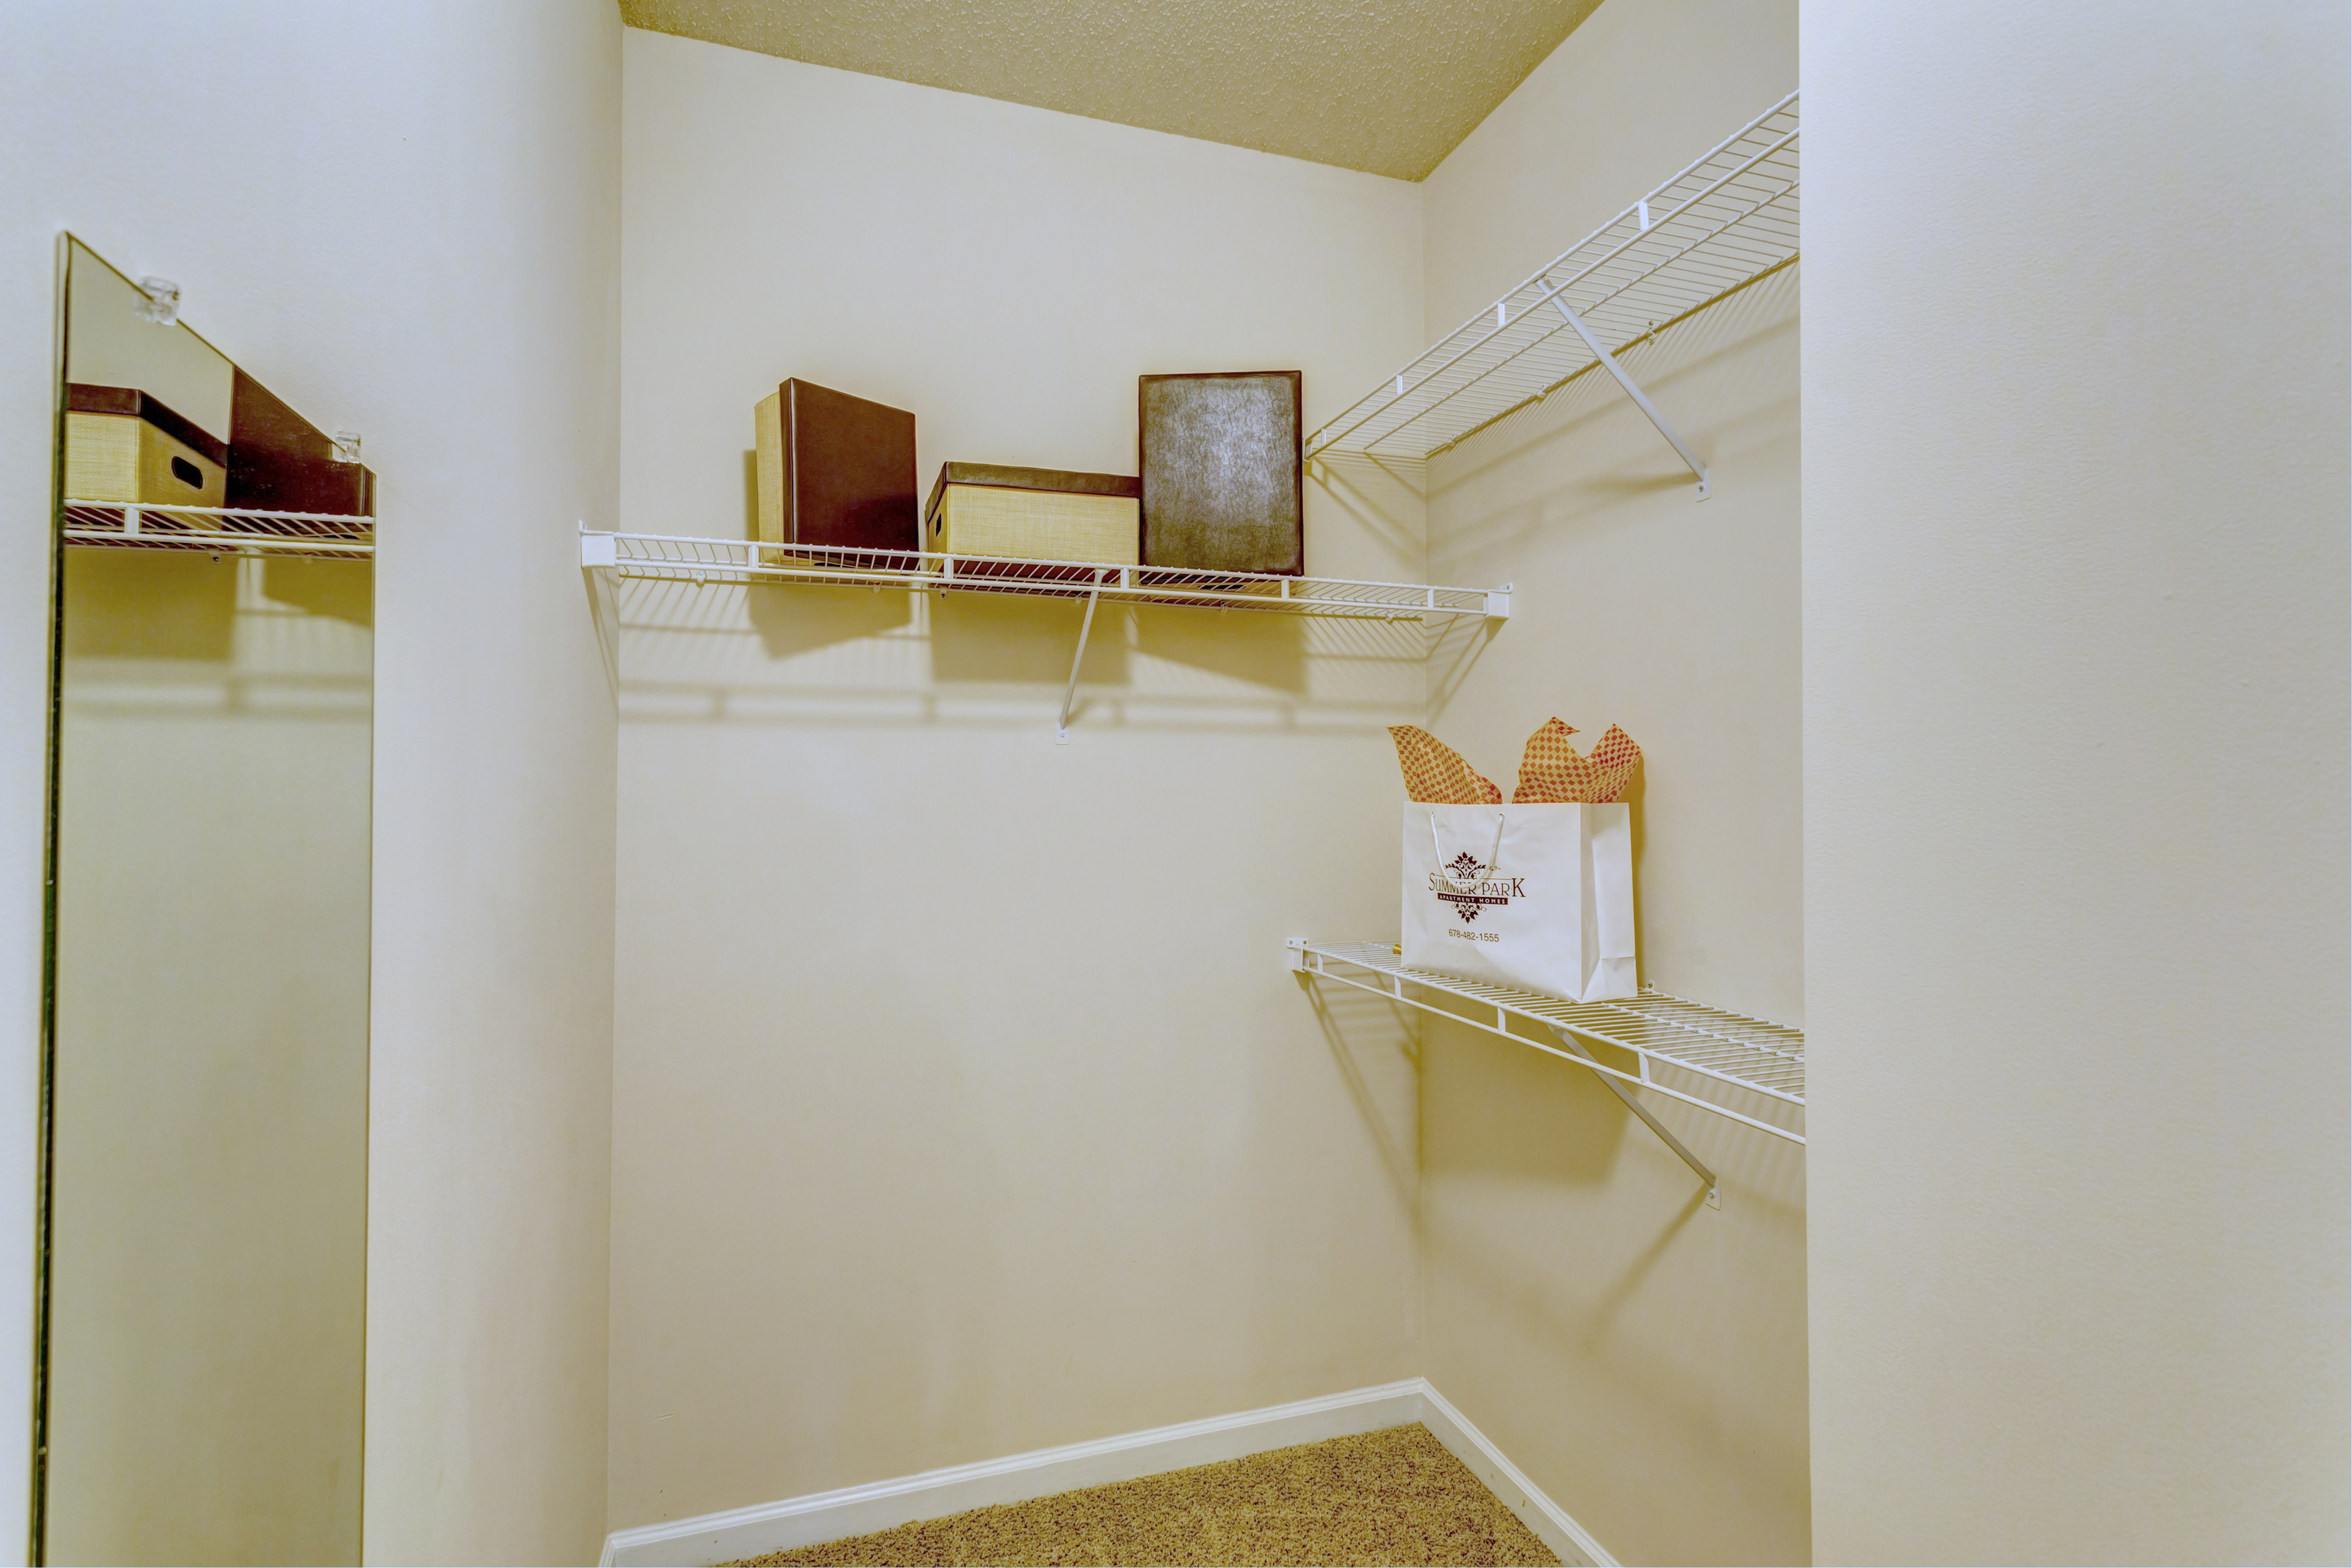 View of Closet, Showing Rack, Boxes and Mirror at Summer Park Apartments